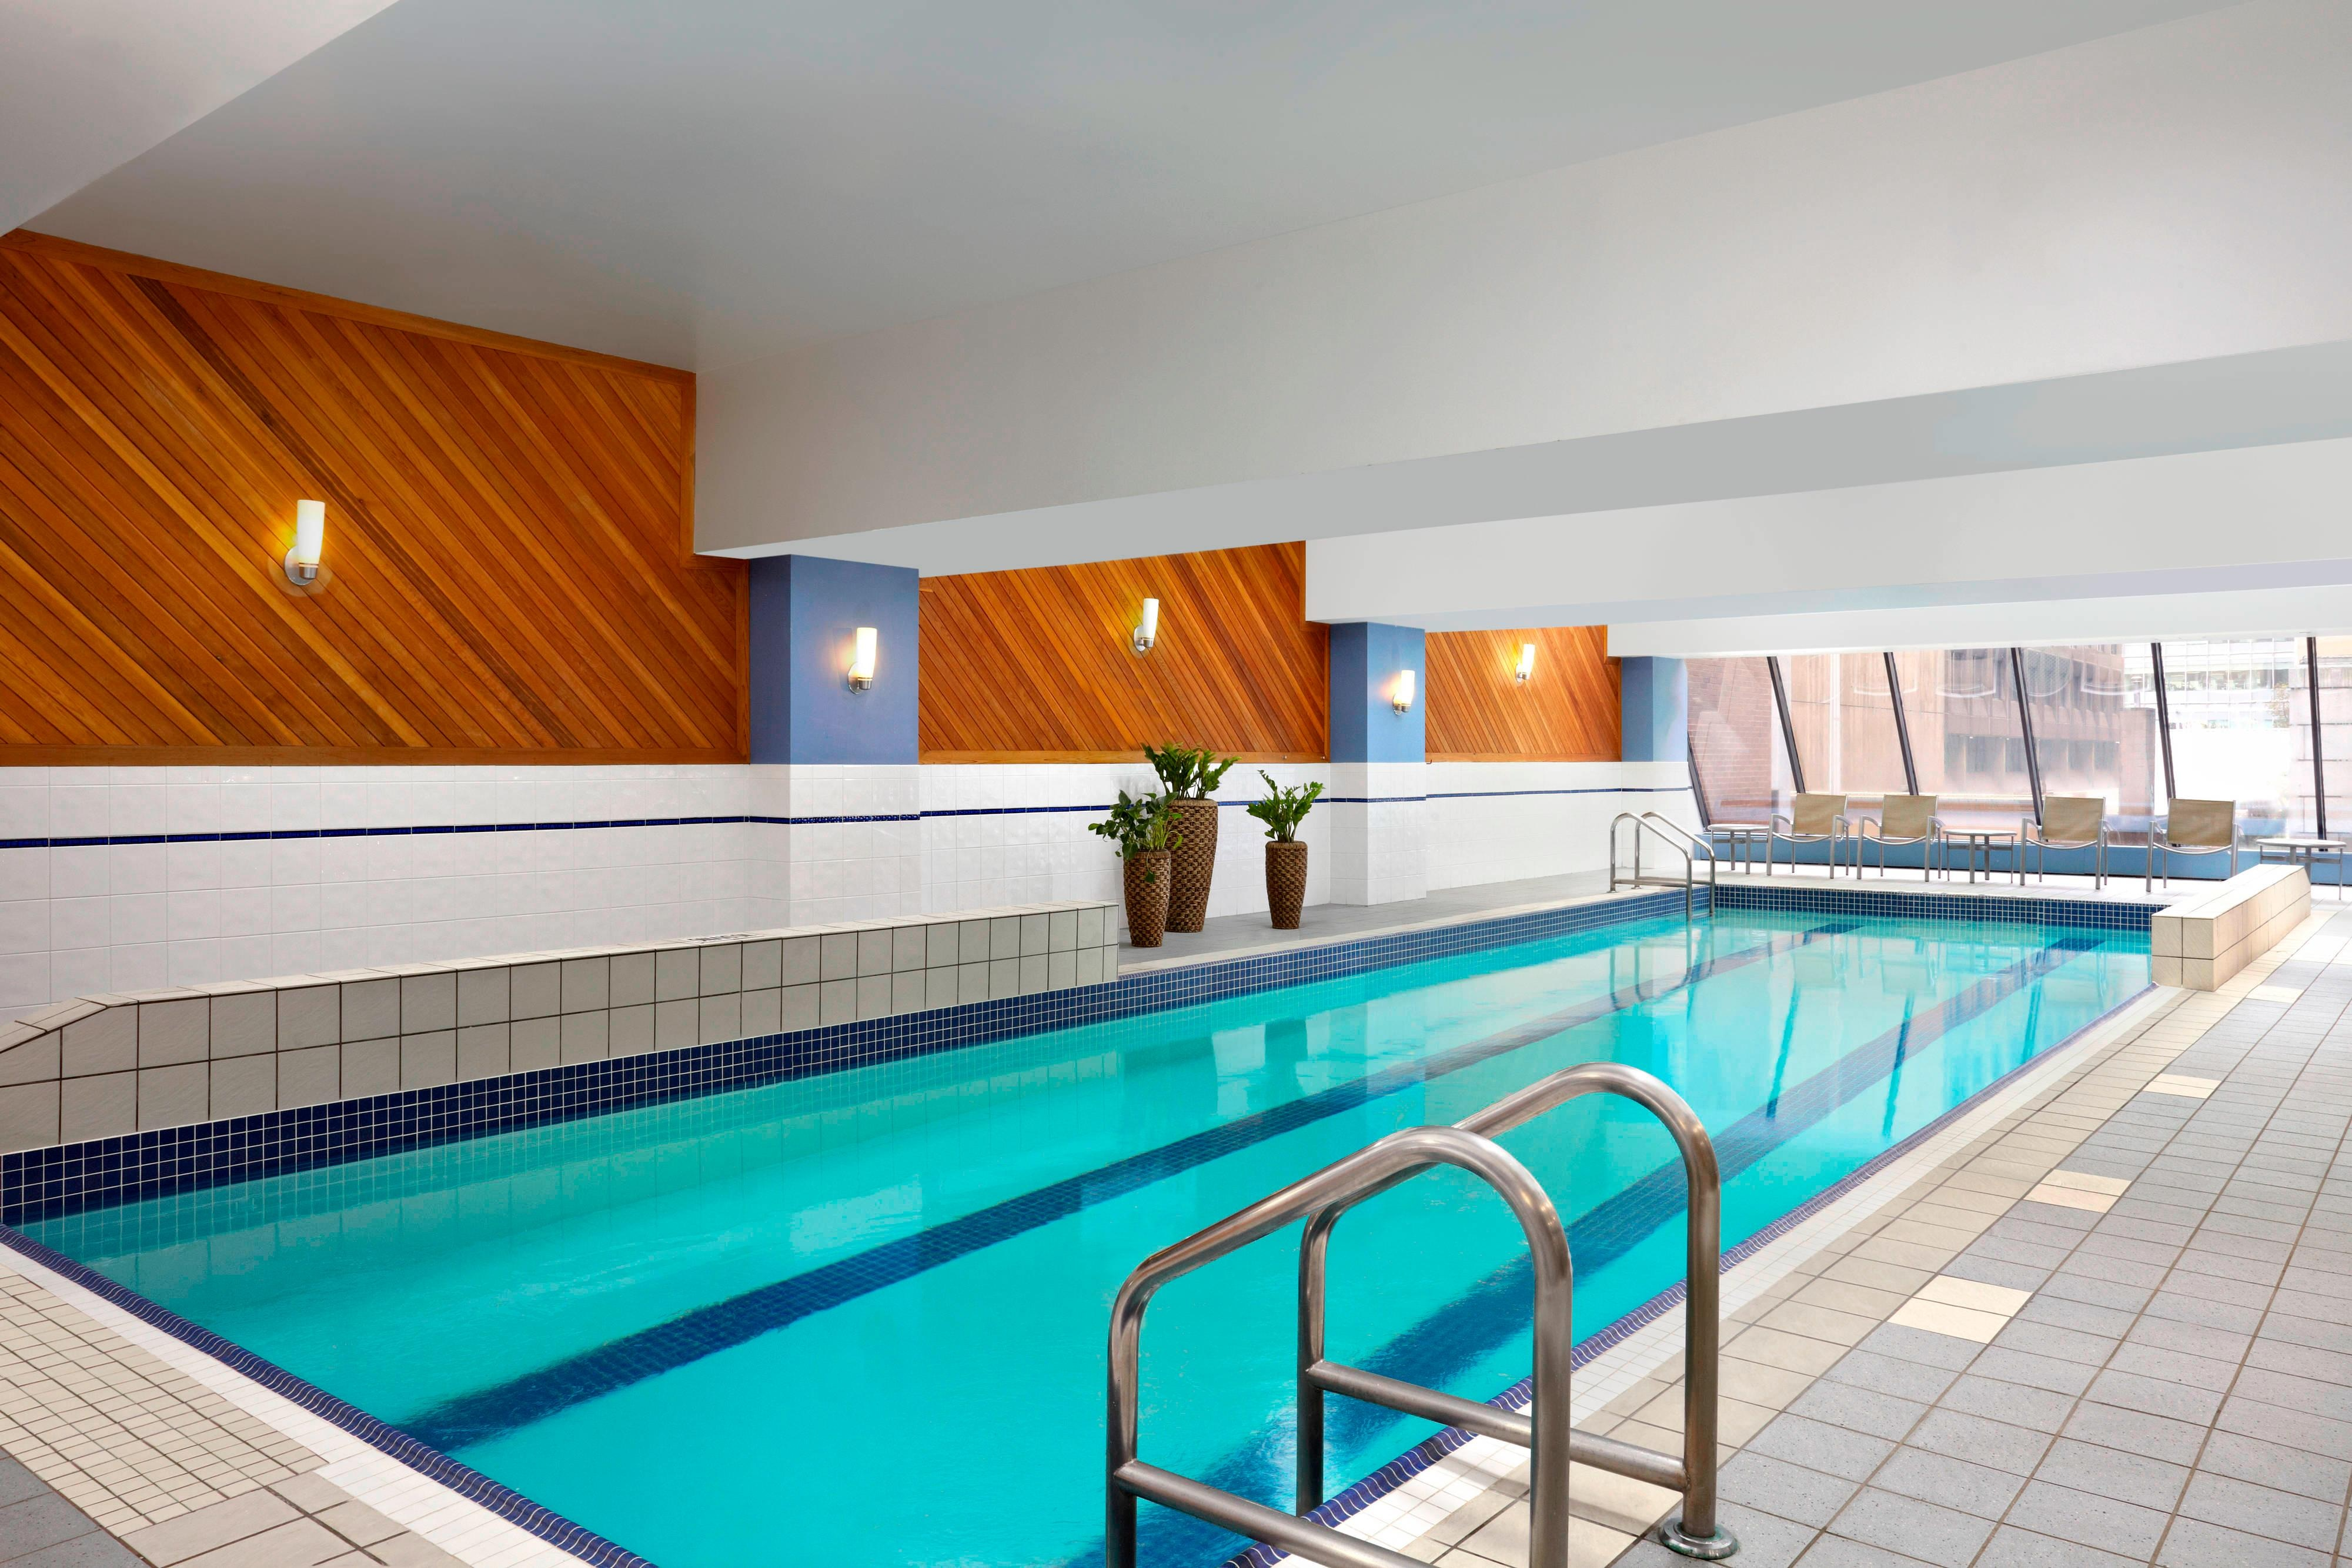 Fitness Center - Pool